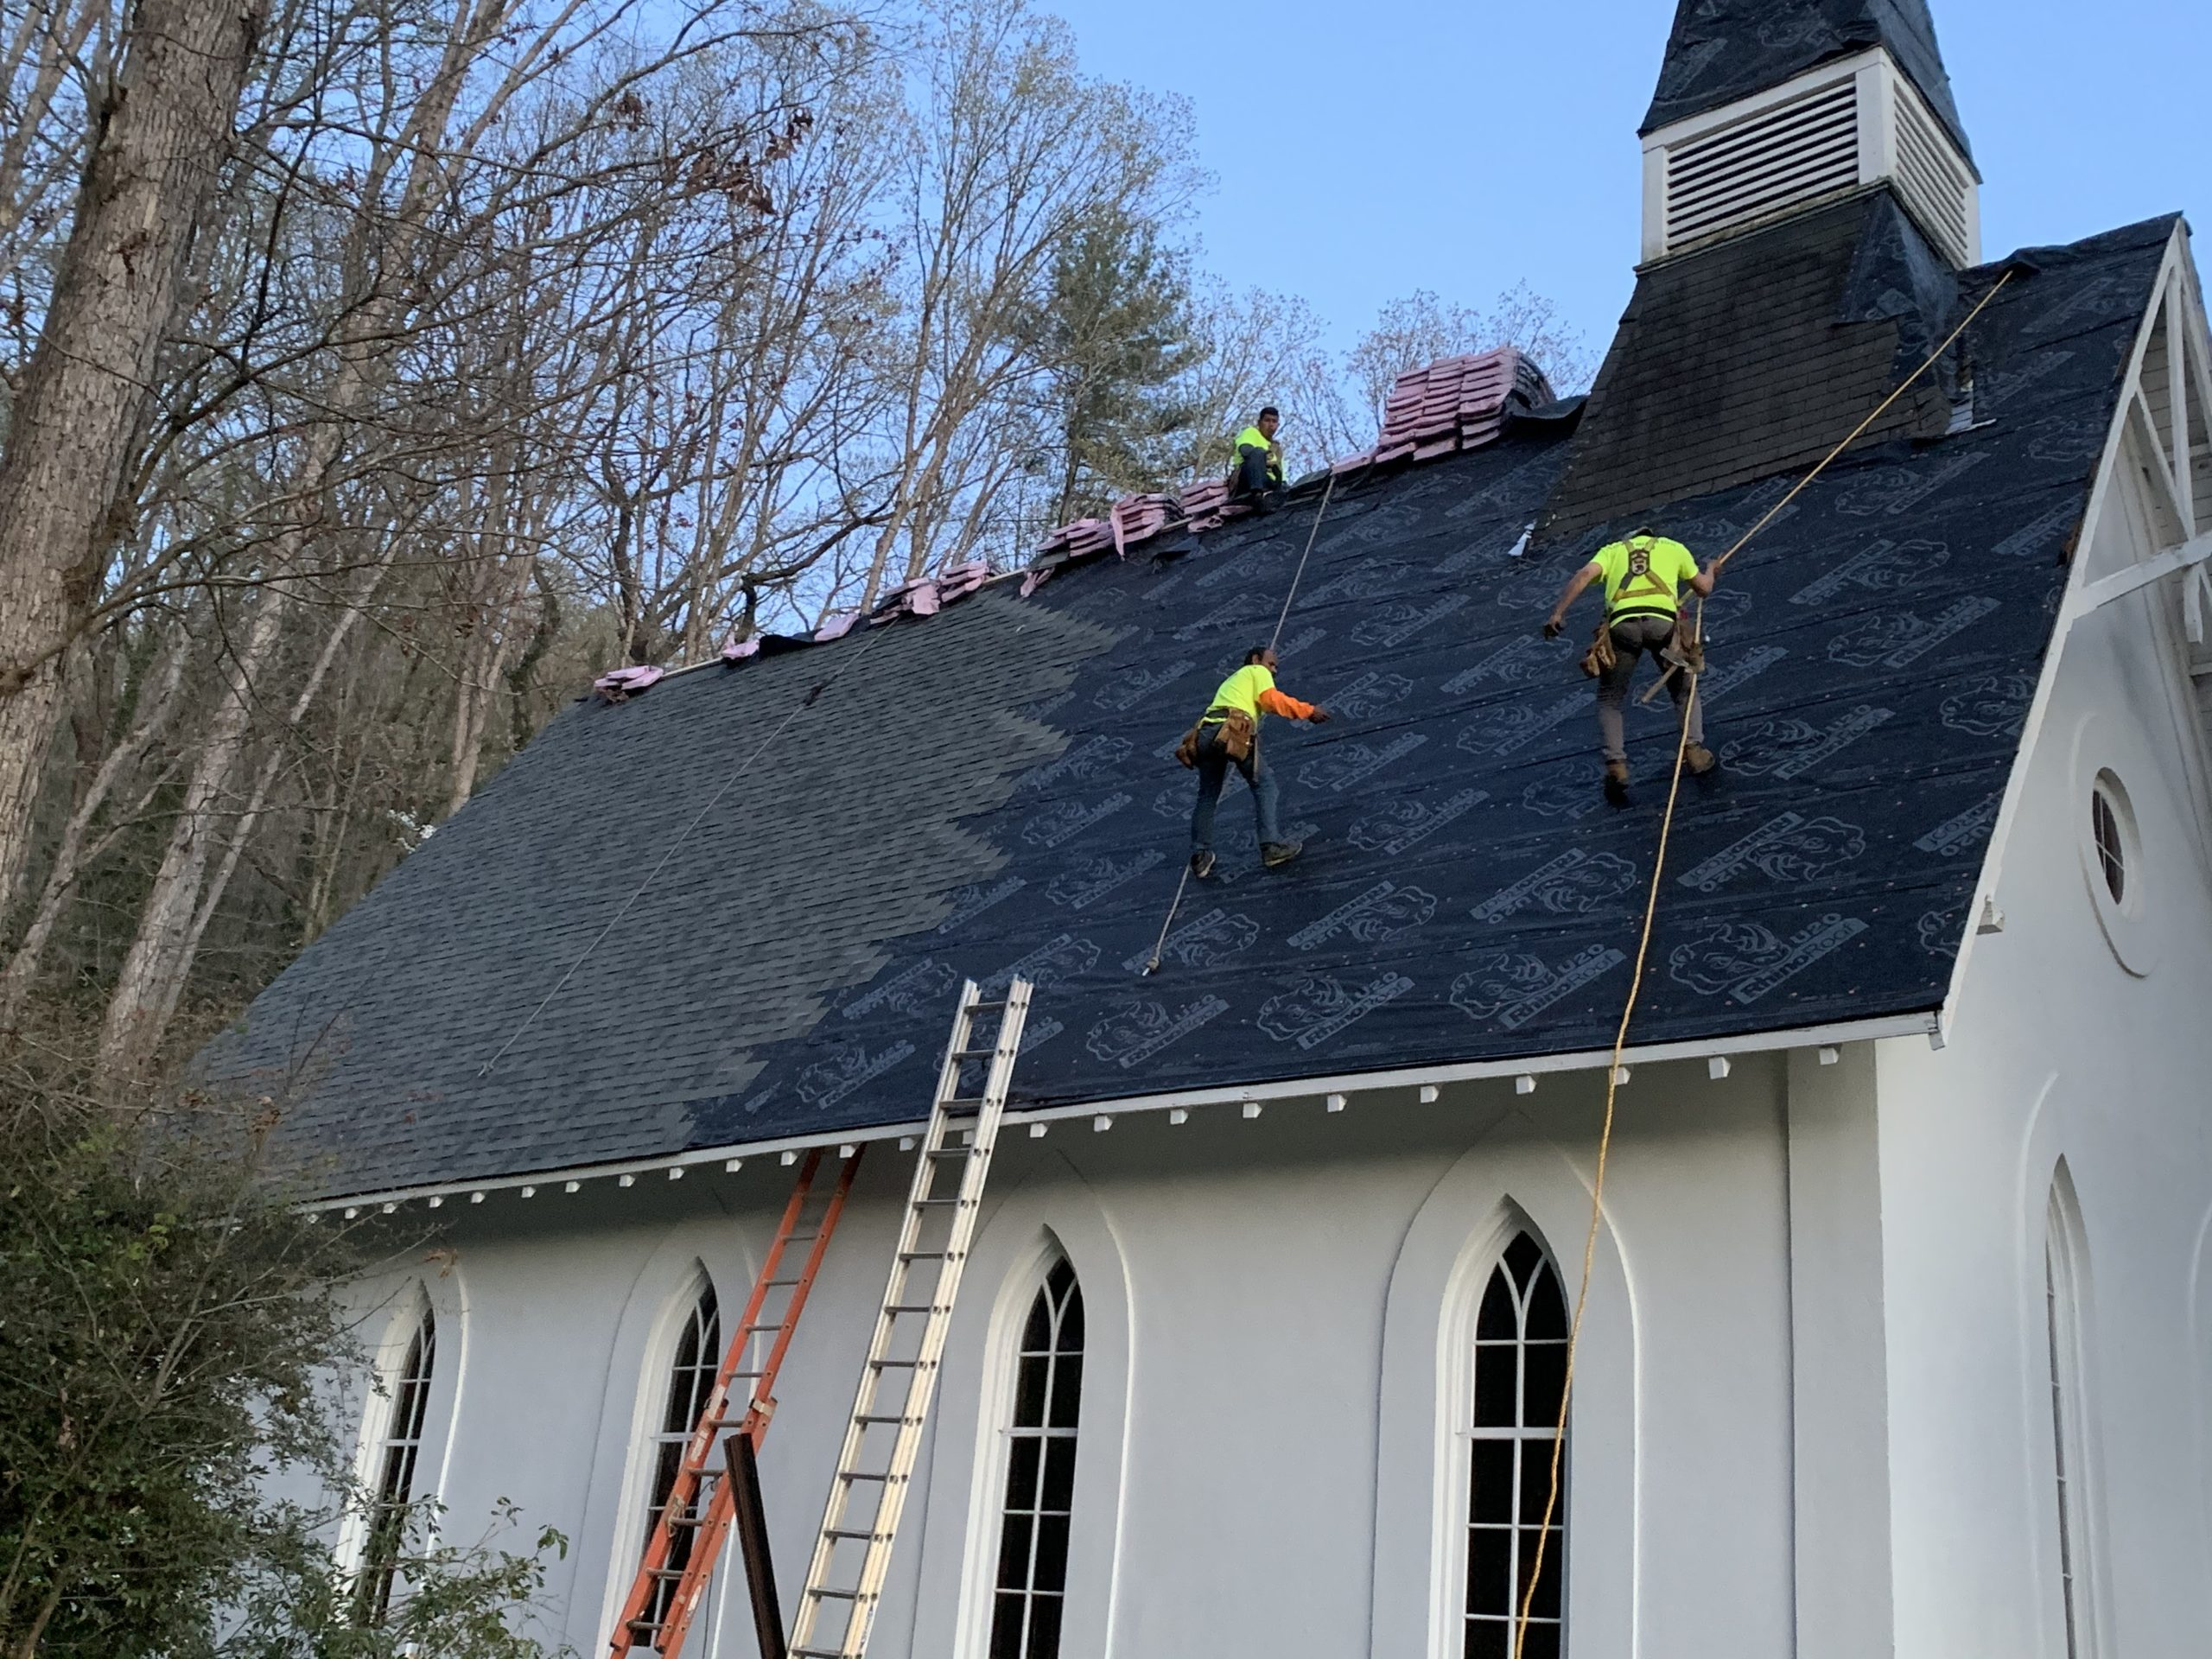 The roofing crew while installing the shingles.